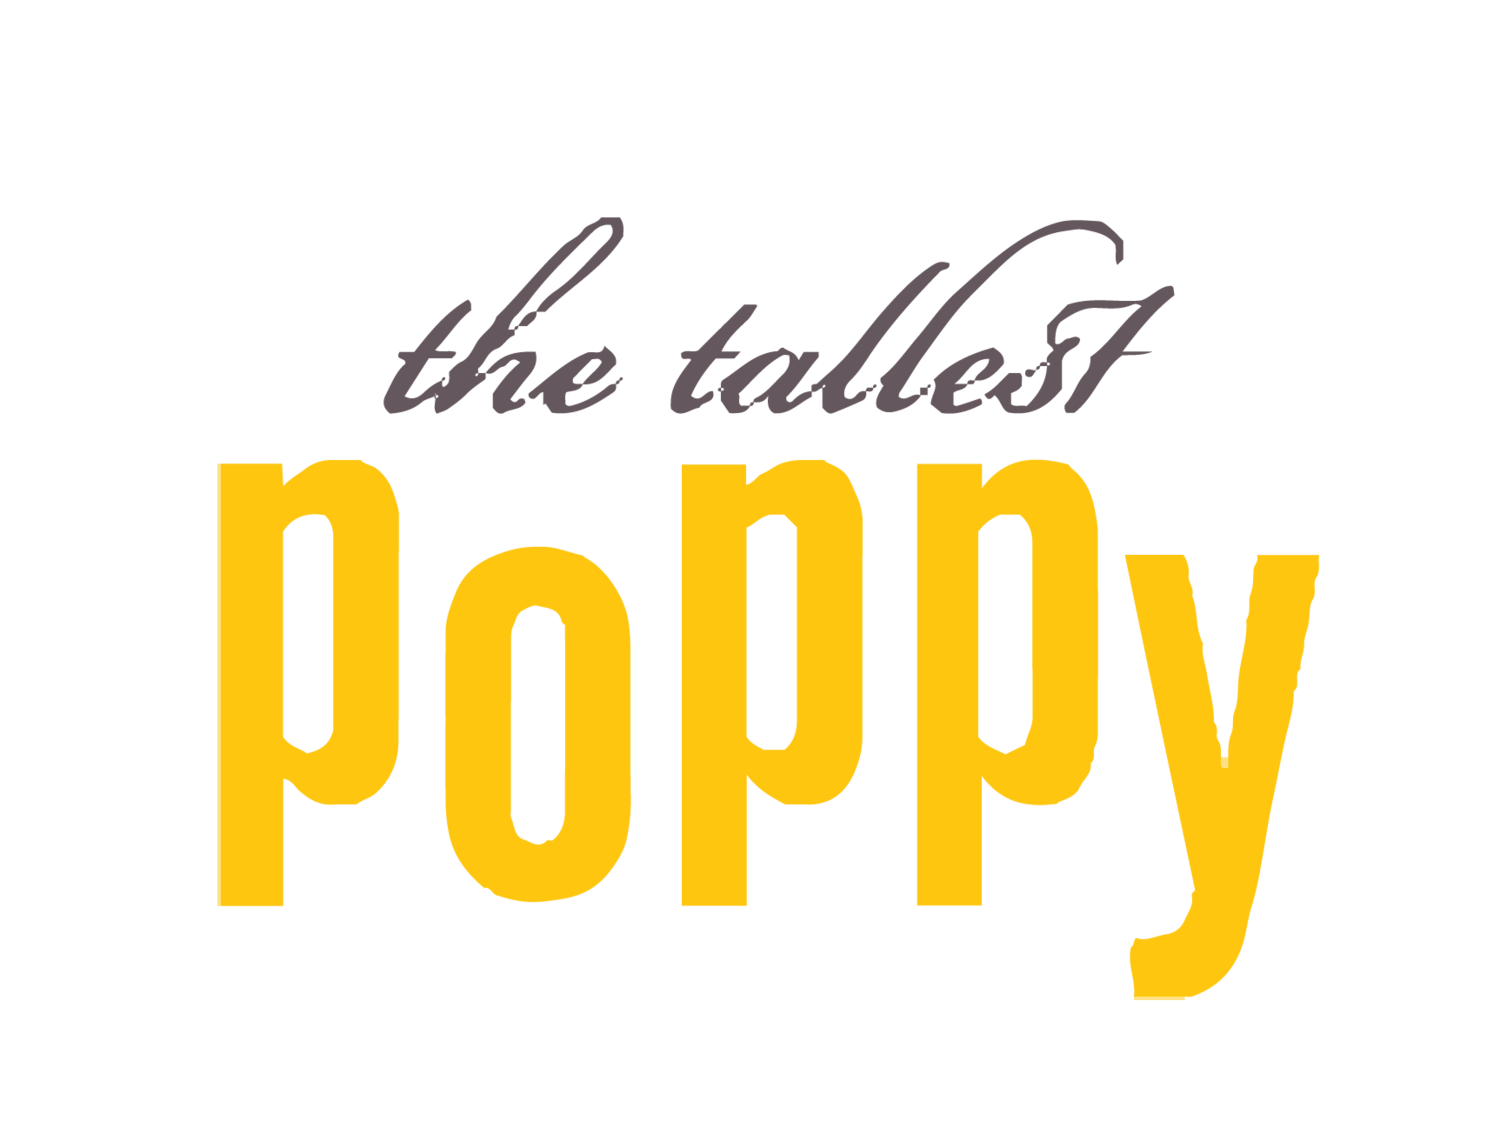 The Tallest Poppy